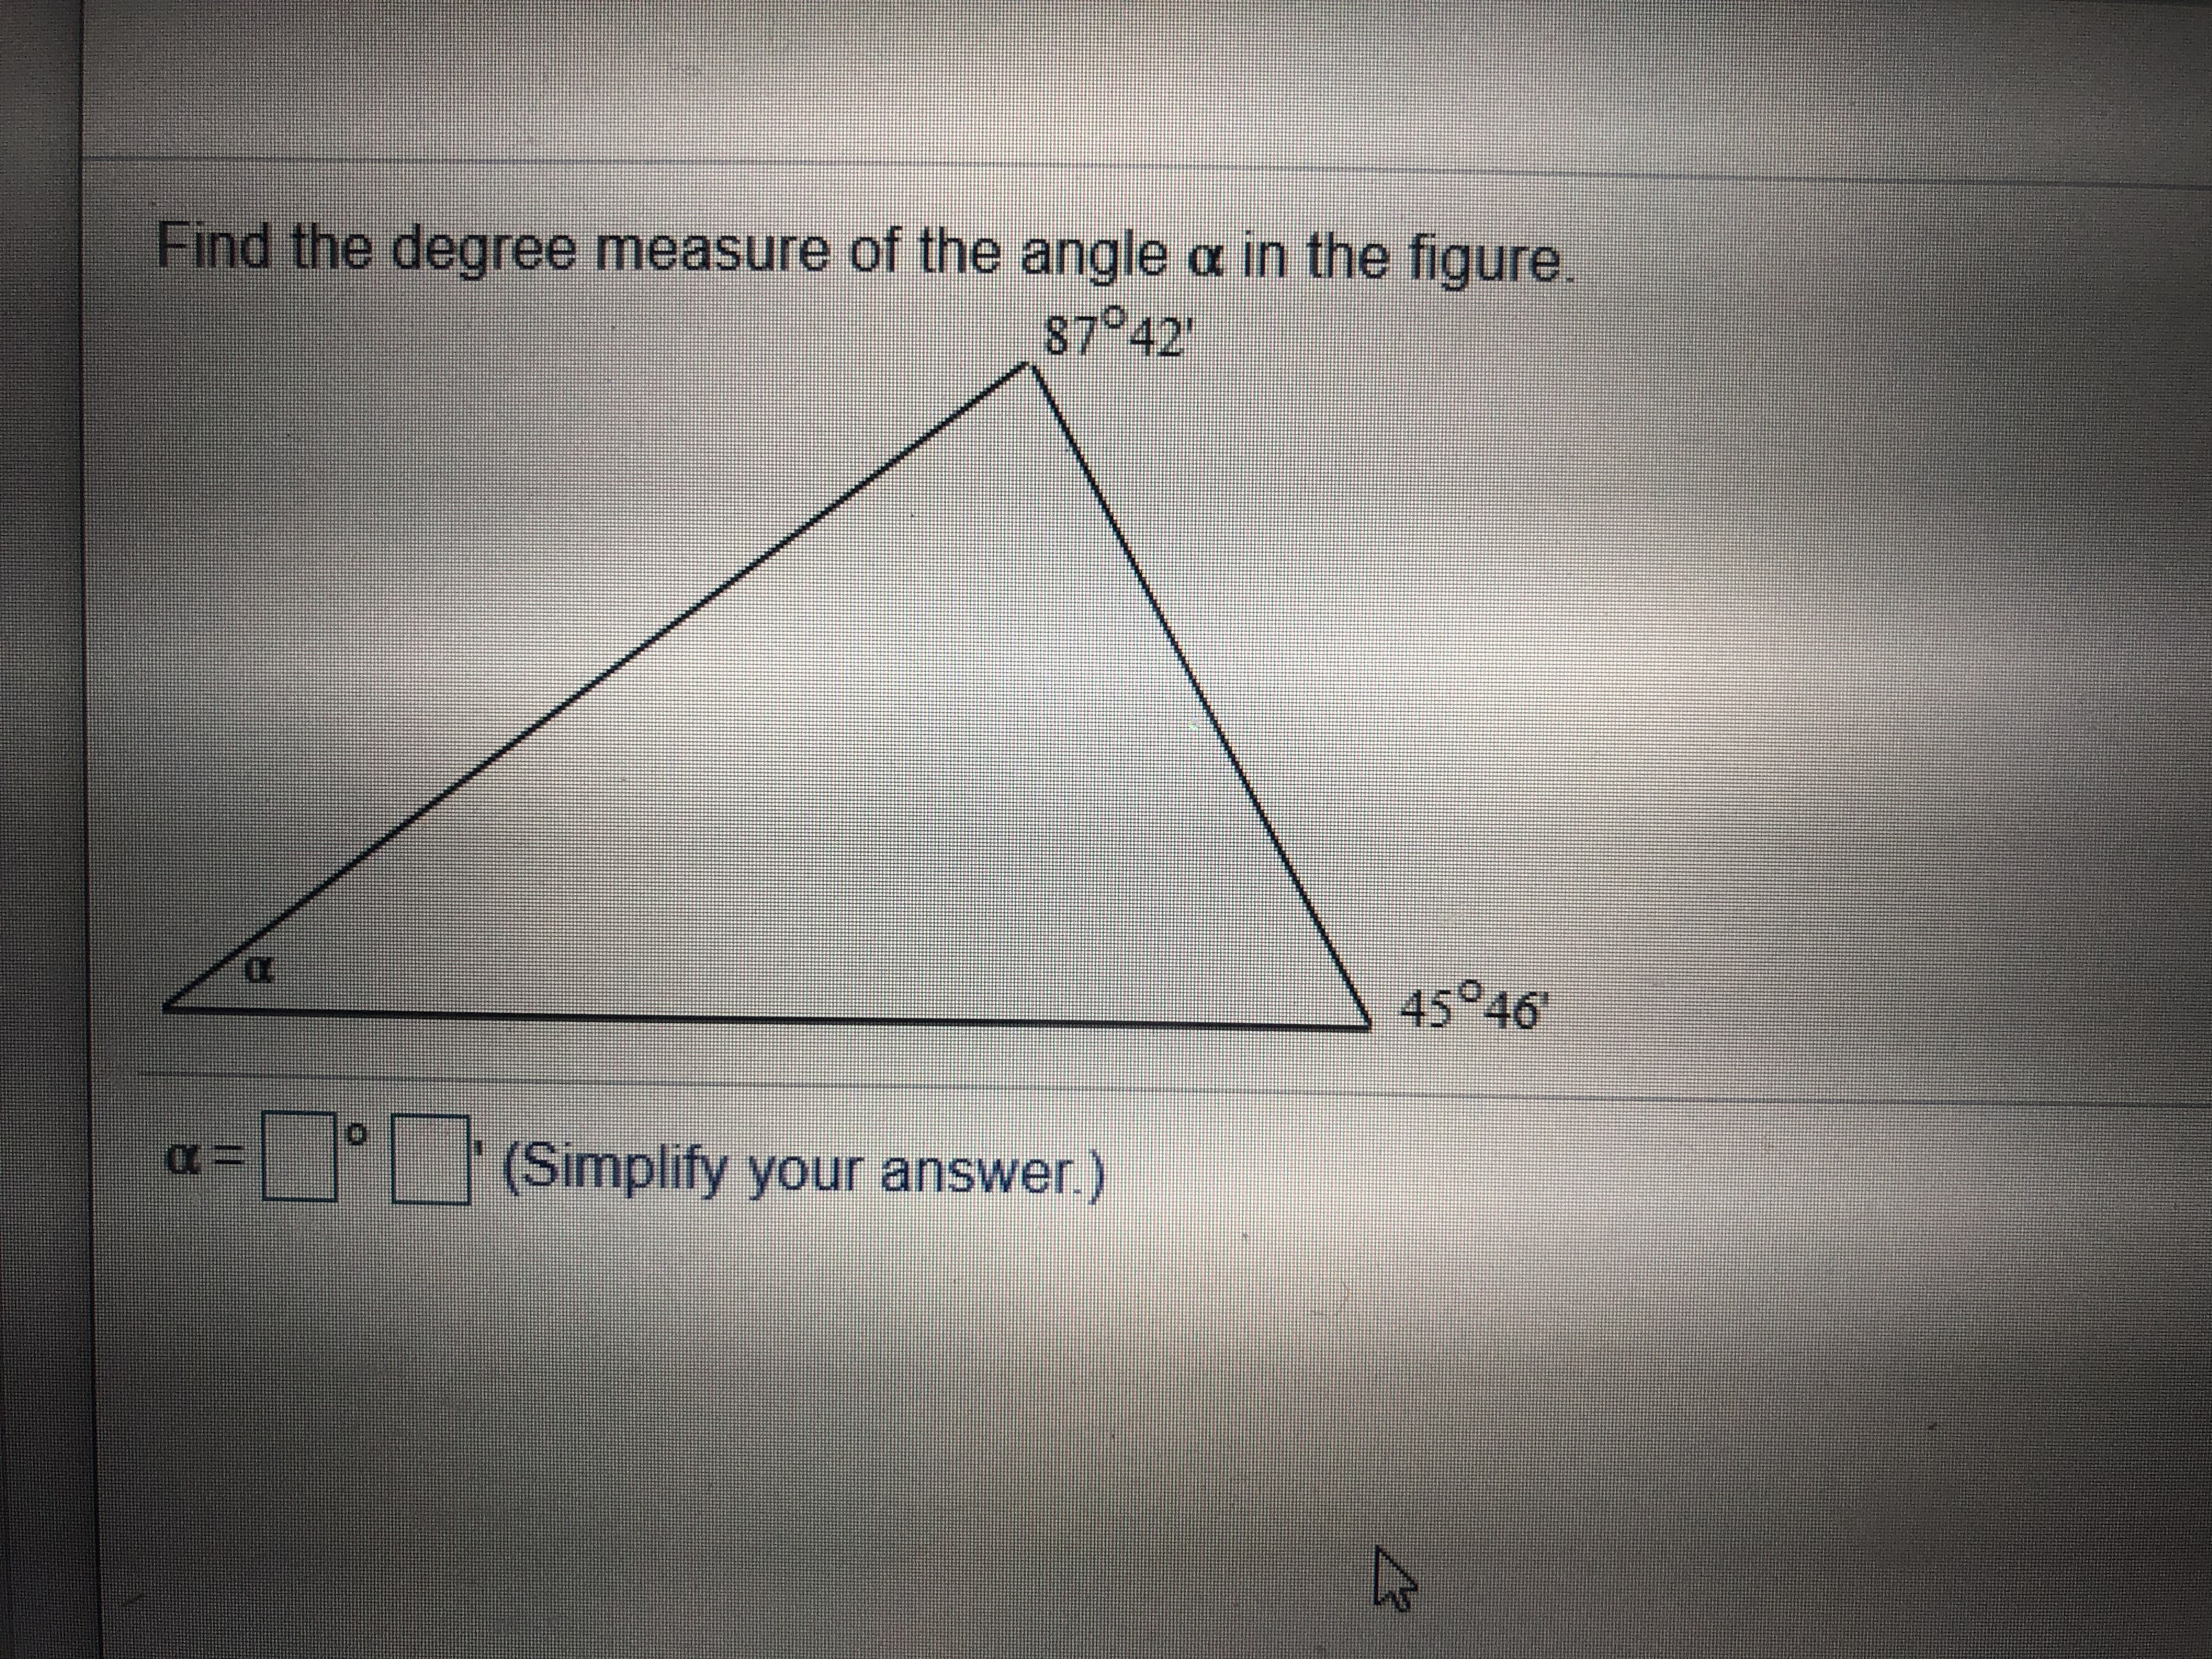 Find the degree measure of the angle c in the figure. 8742 45 46 (Simplify your answer.)